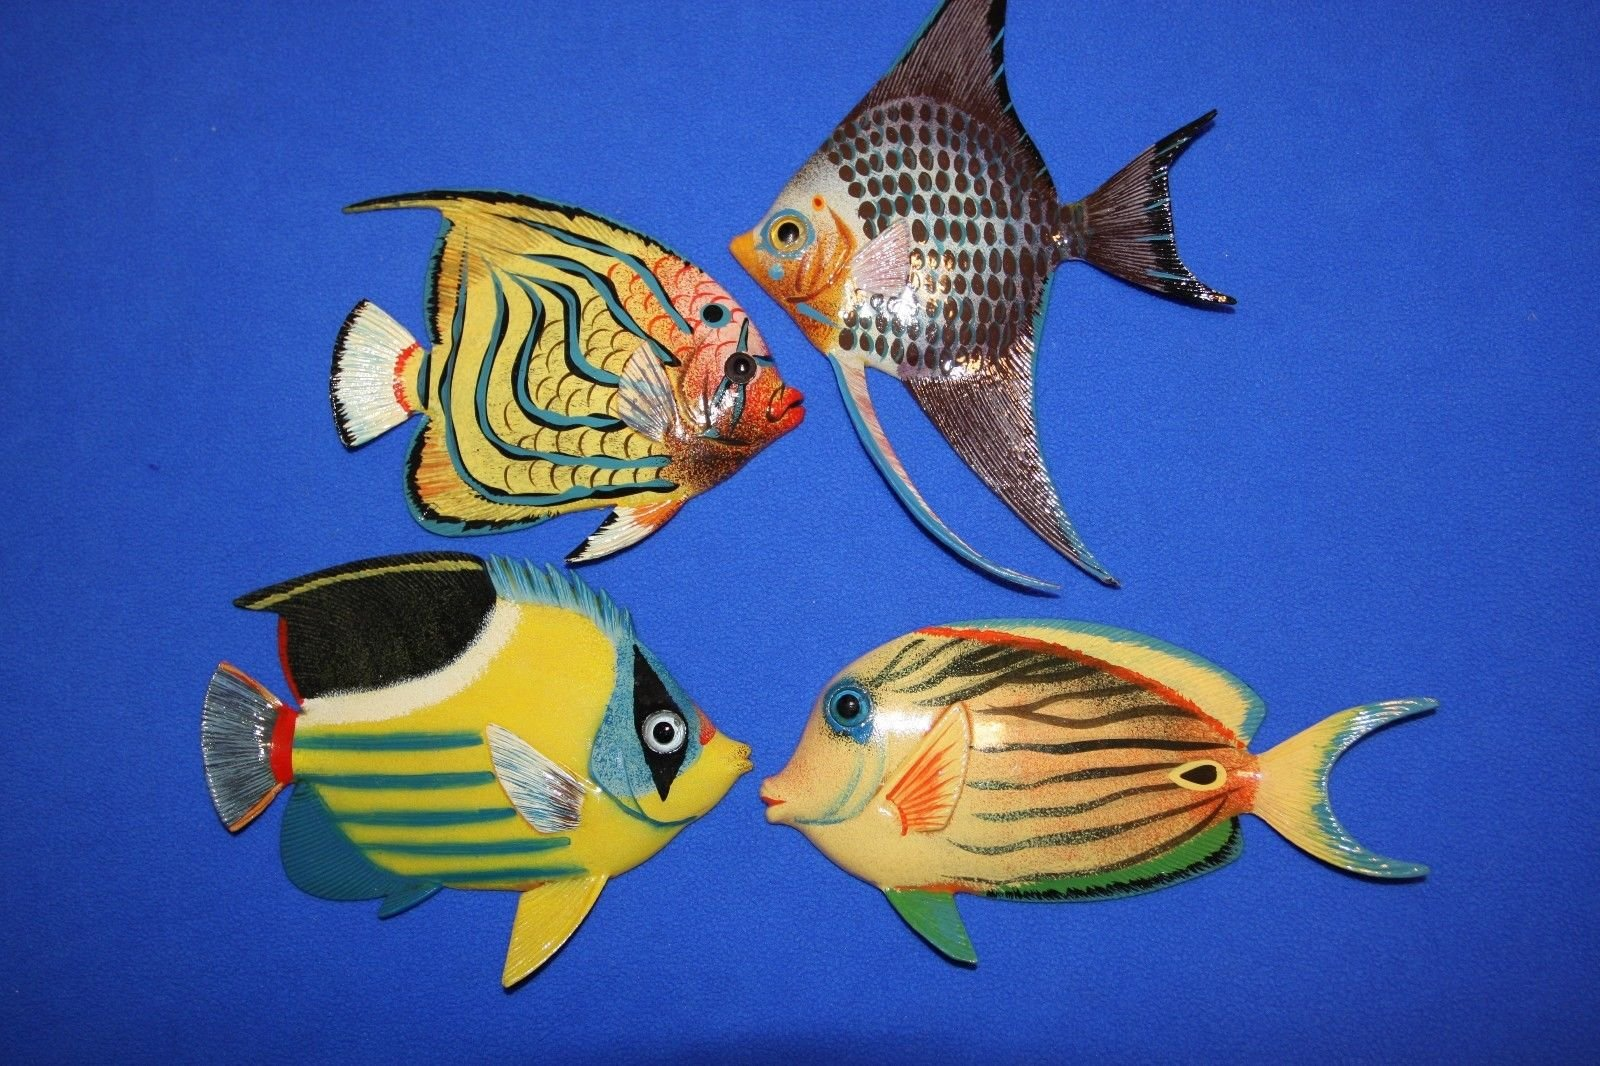 Salty Pelican Coral Reef Nursery Decor, Colorful Fish 3-D Poly-resin 6 inch, Bundle 4 Fish